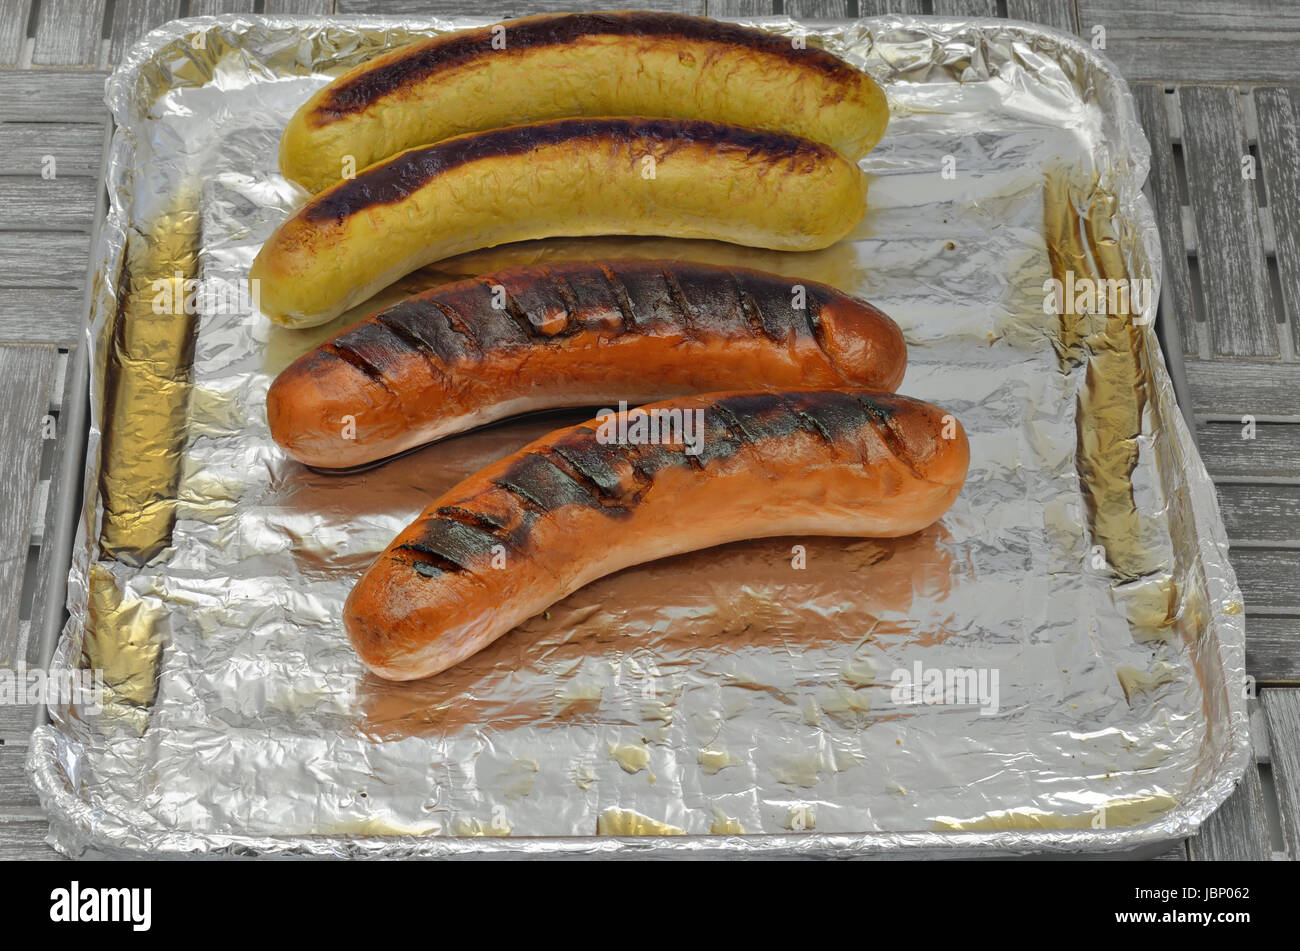 grilled sausages on grill with silver foil, close up, macro, full frame Stock Photo